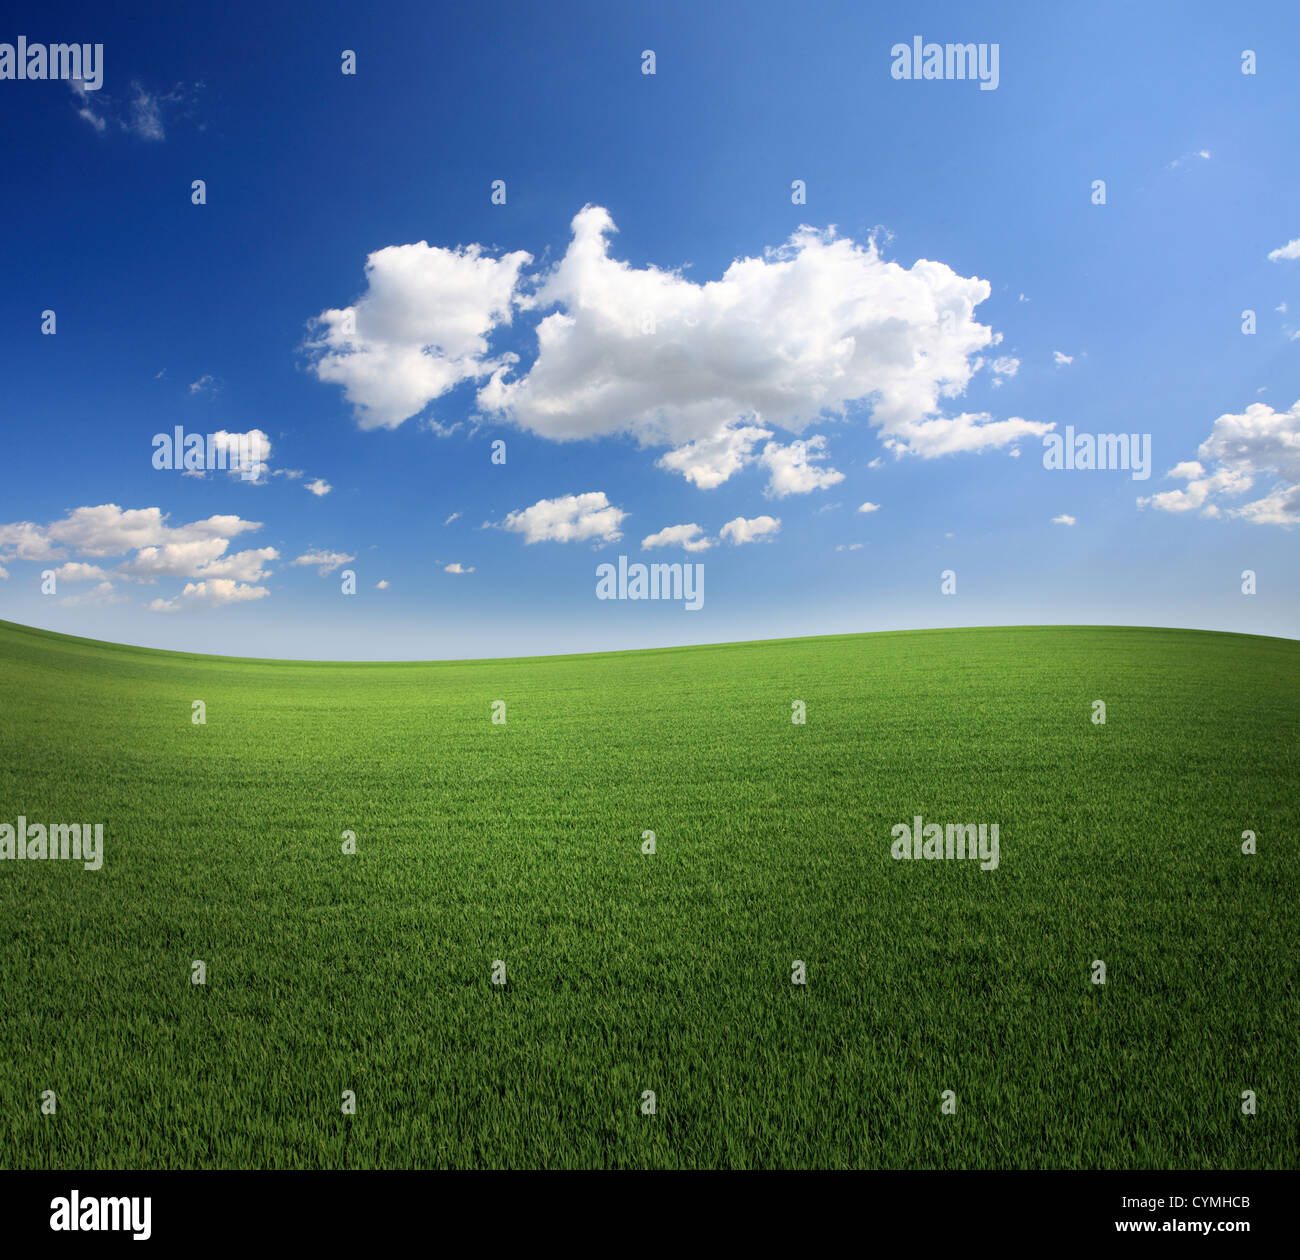 Lush green grass and a cool blue sky - Stock Image